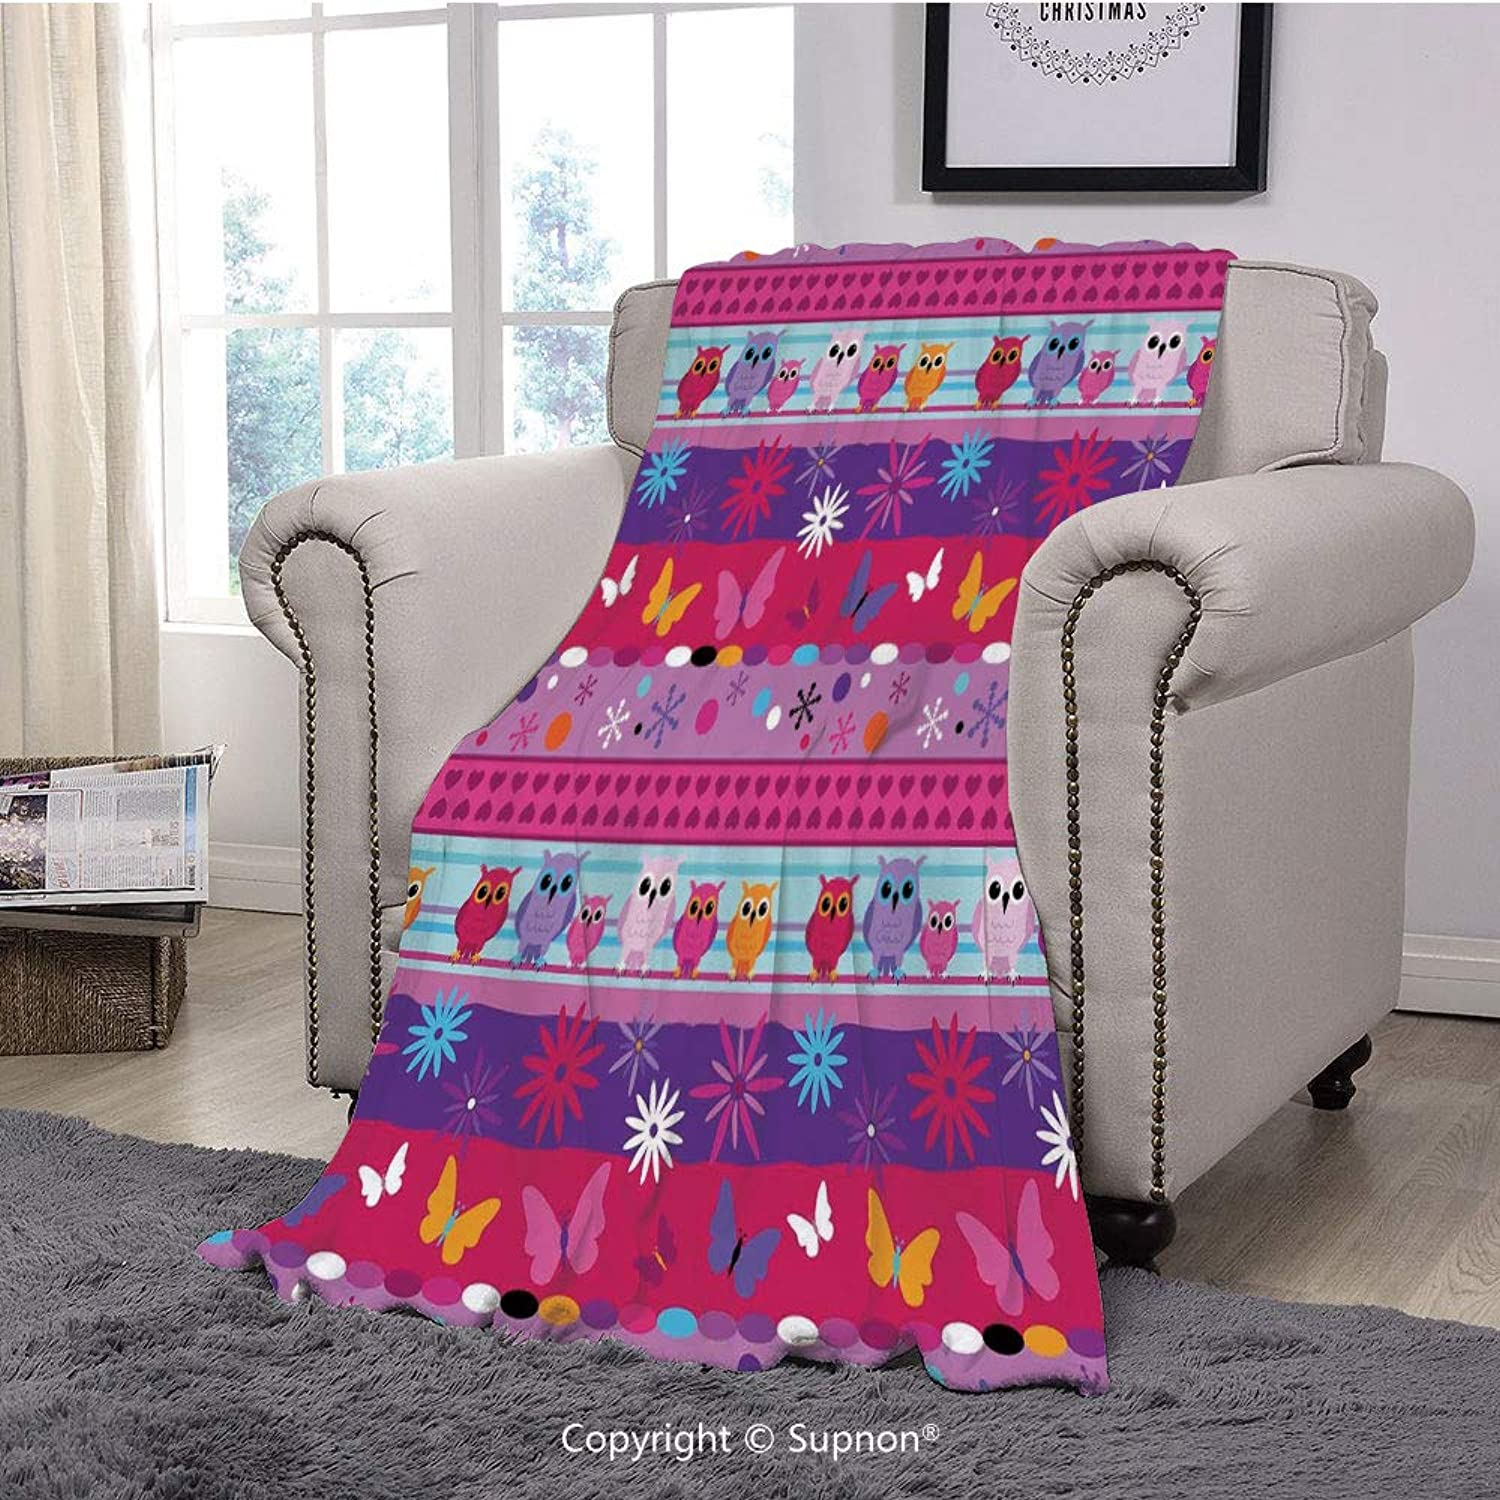 BeeMeng Throw Blanket Super Soft Fuzzy Light Blanket,Kids,Striped Cute Cartoon Style Pattern with Owls Flowers Butterflies Hearts and Snowflakes,Multicolor(51  x 51 )